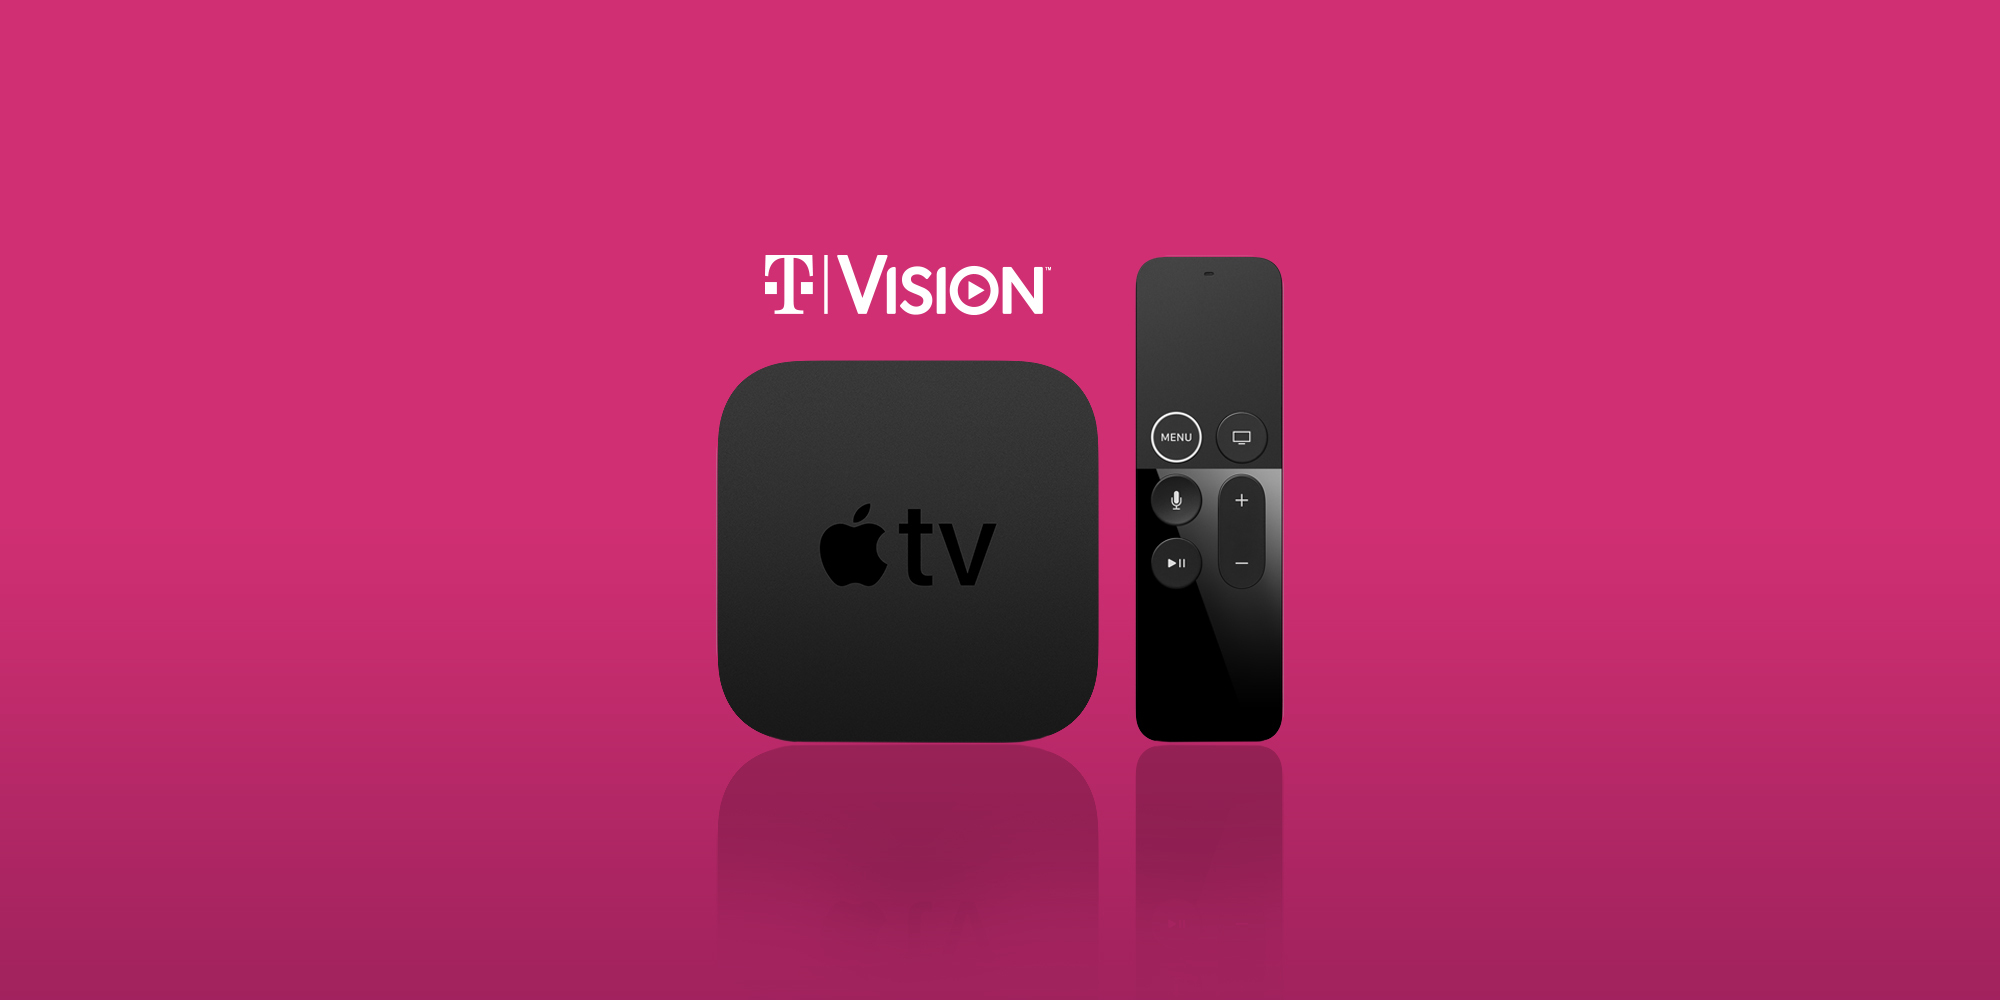 T-Mobile announces TVision live TV service starting at $10/month, Apple TV+ and Apple TV 4K promos